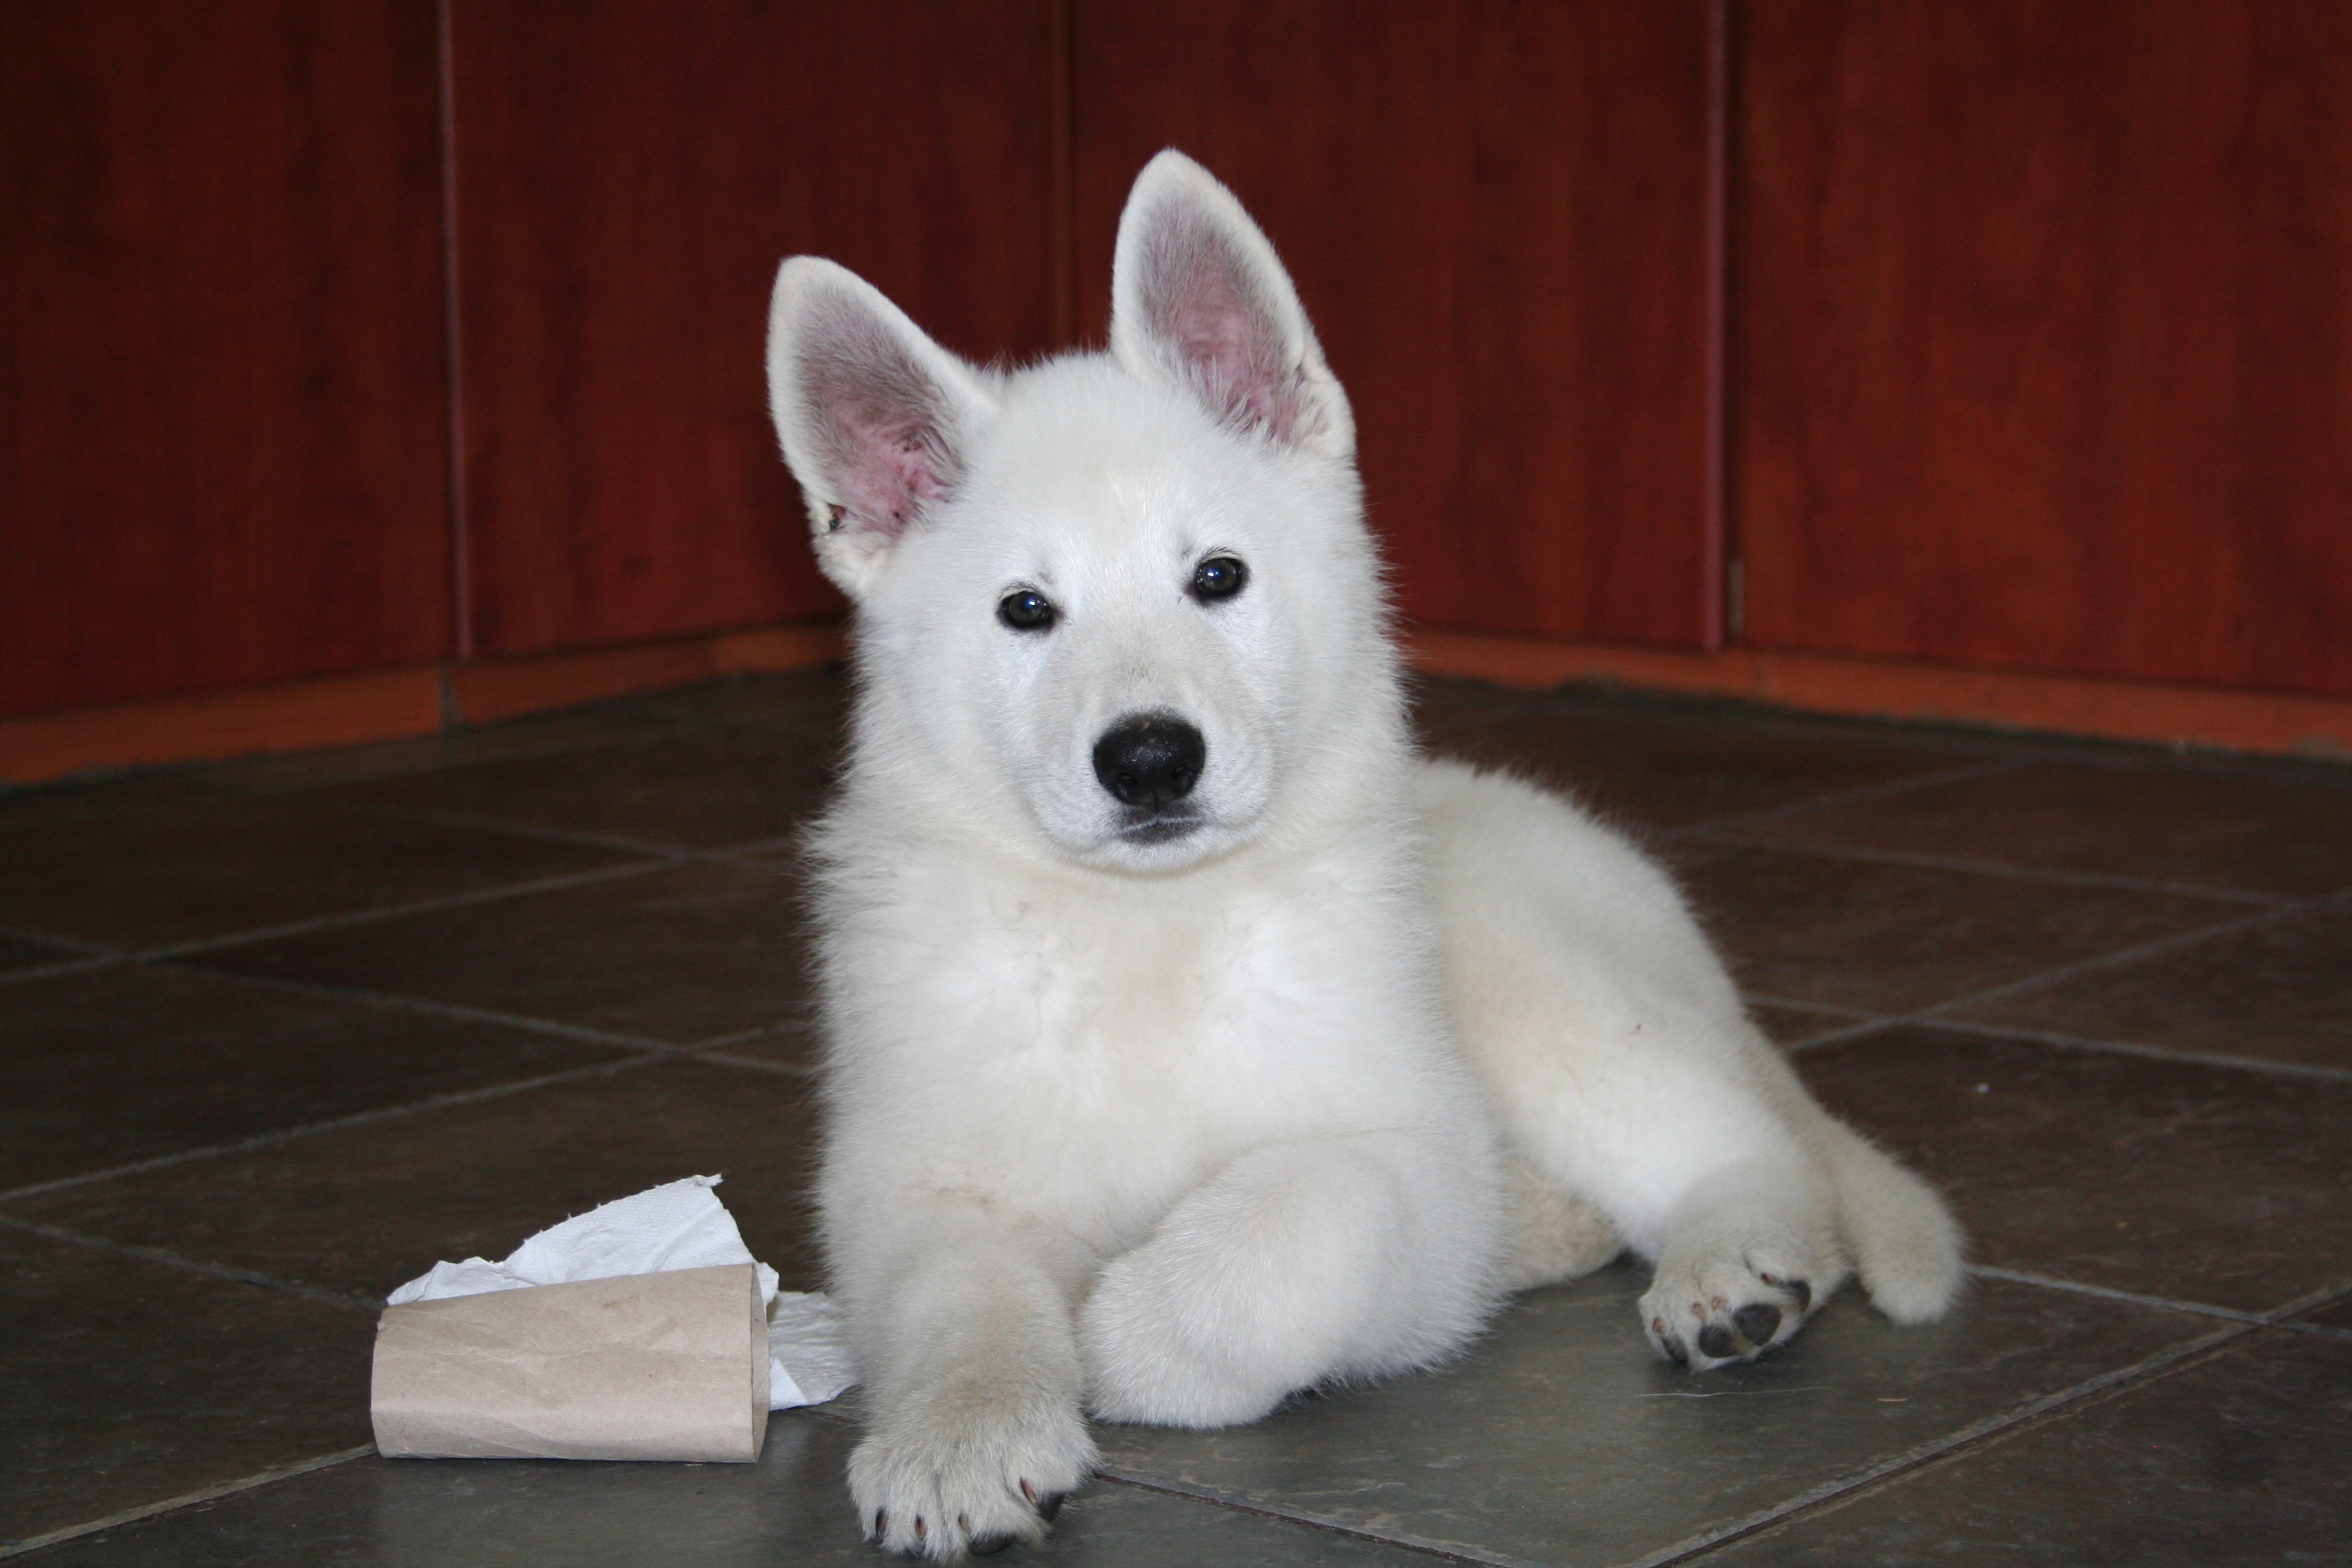 How to buy a puppy from abroad? 1